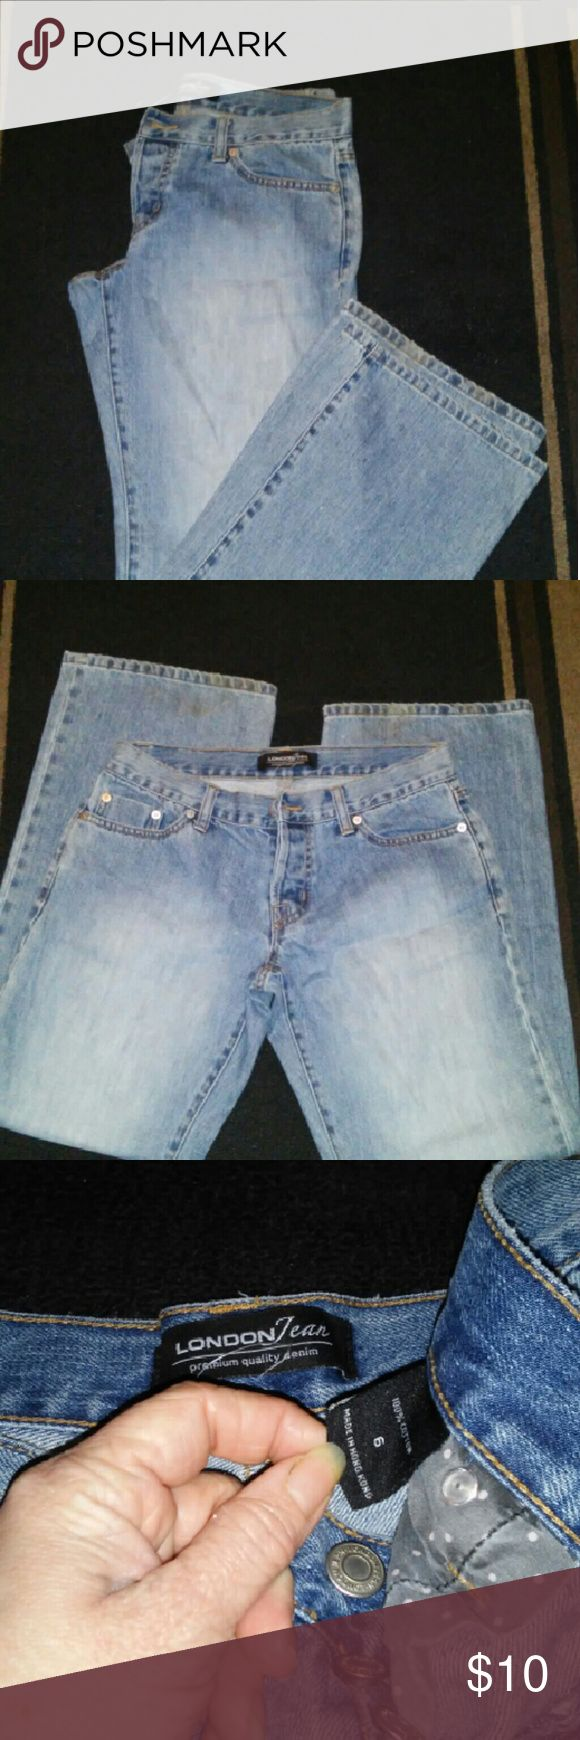 Victoria Secrets London Jean boot cut (p#9) I got these on eBay used and they don't fit me right so I've never worn them. They are light rinse button fly. They have a light strain on the knee that looks like it will come out the flash makes it look worse then it is. There is some pant bottom wear. Victoria's Secret Jeans Boot Cut